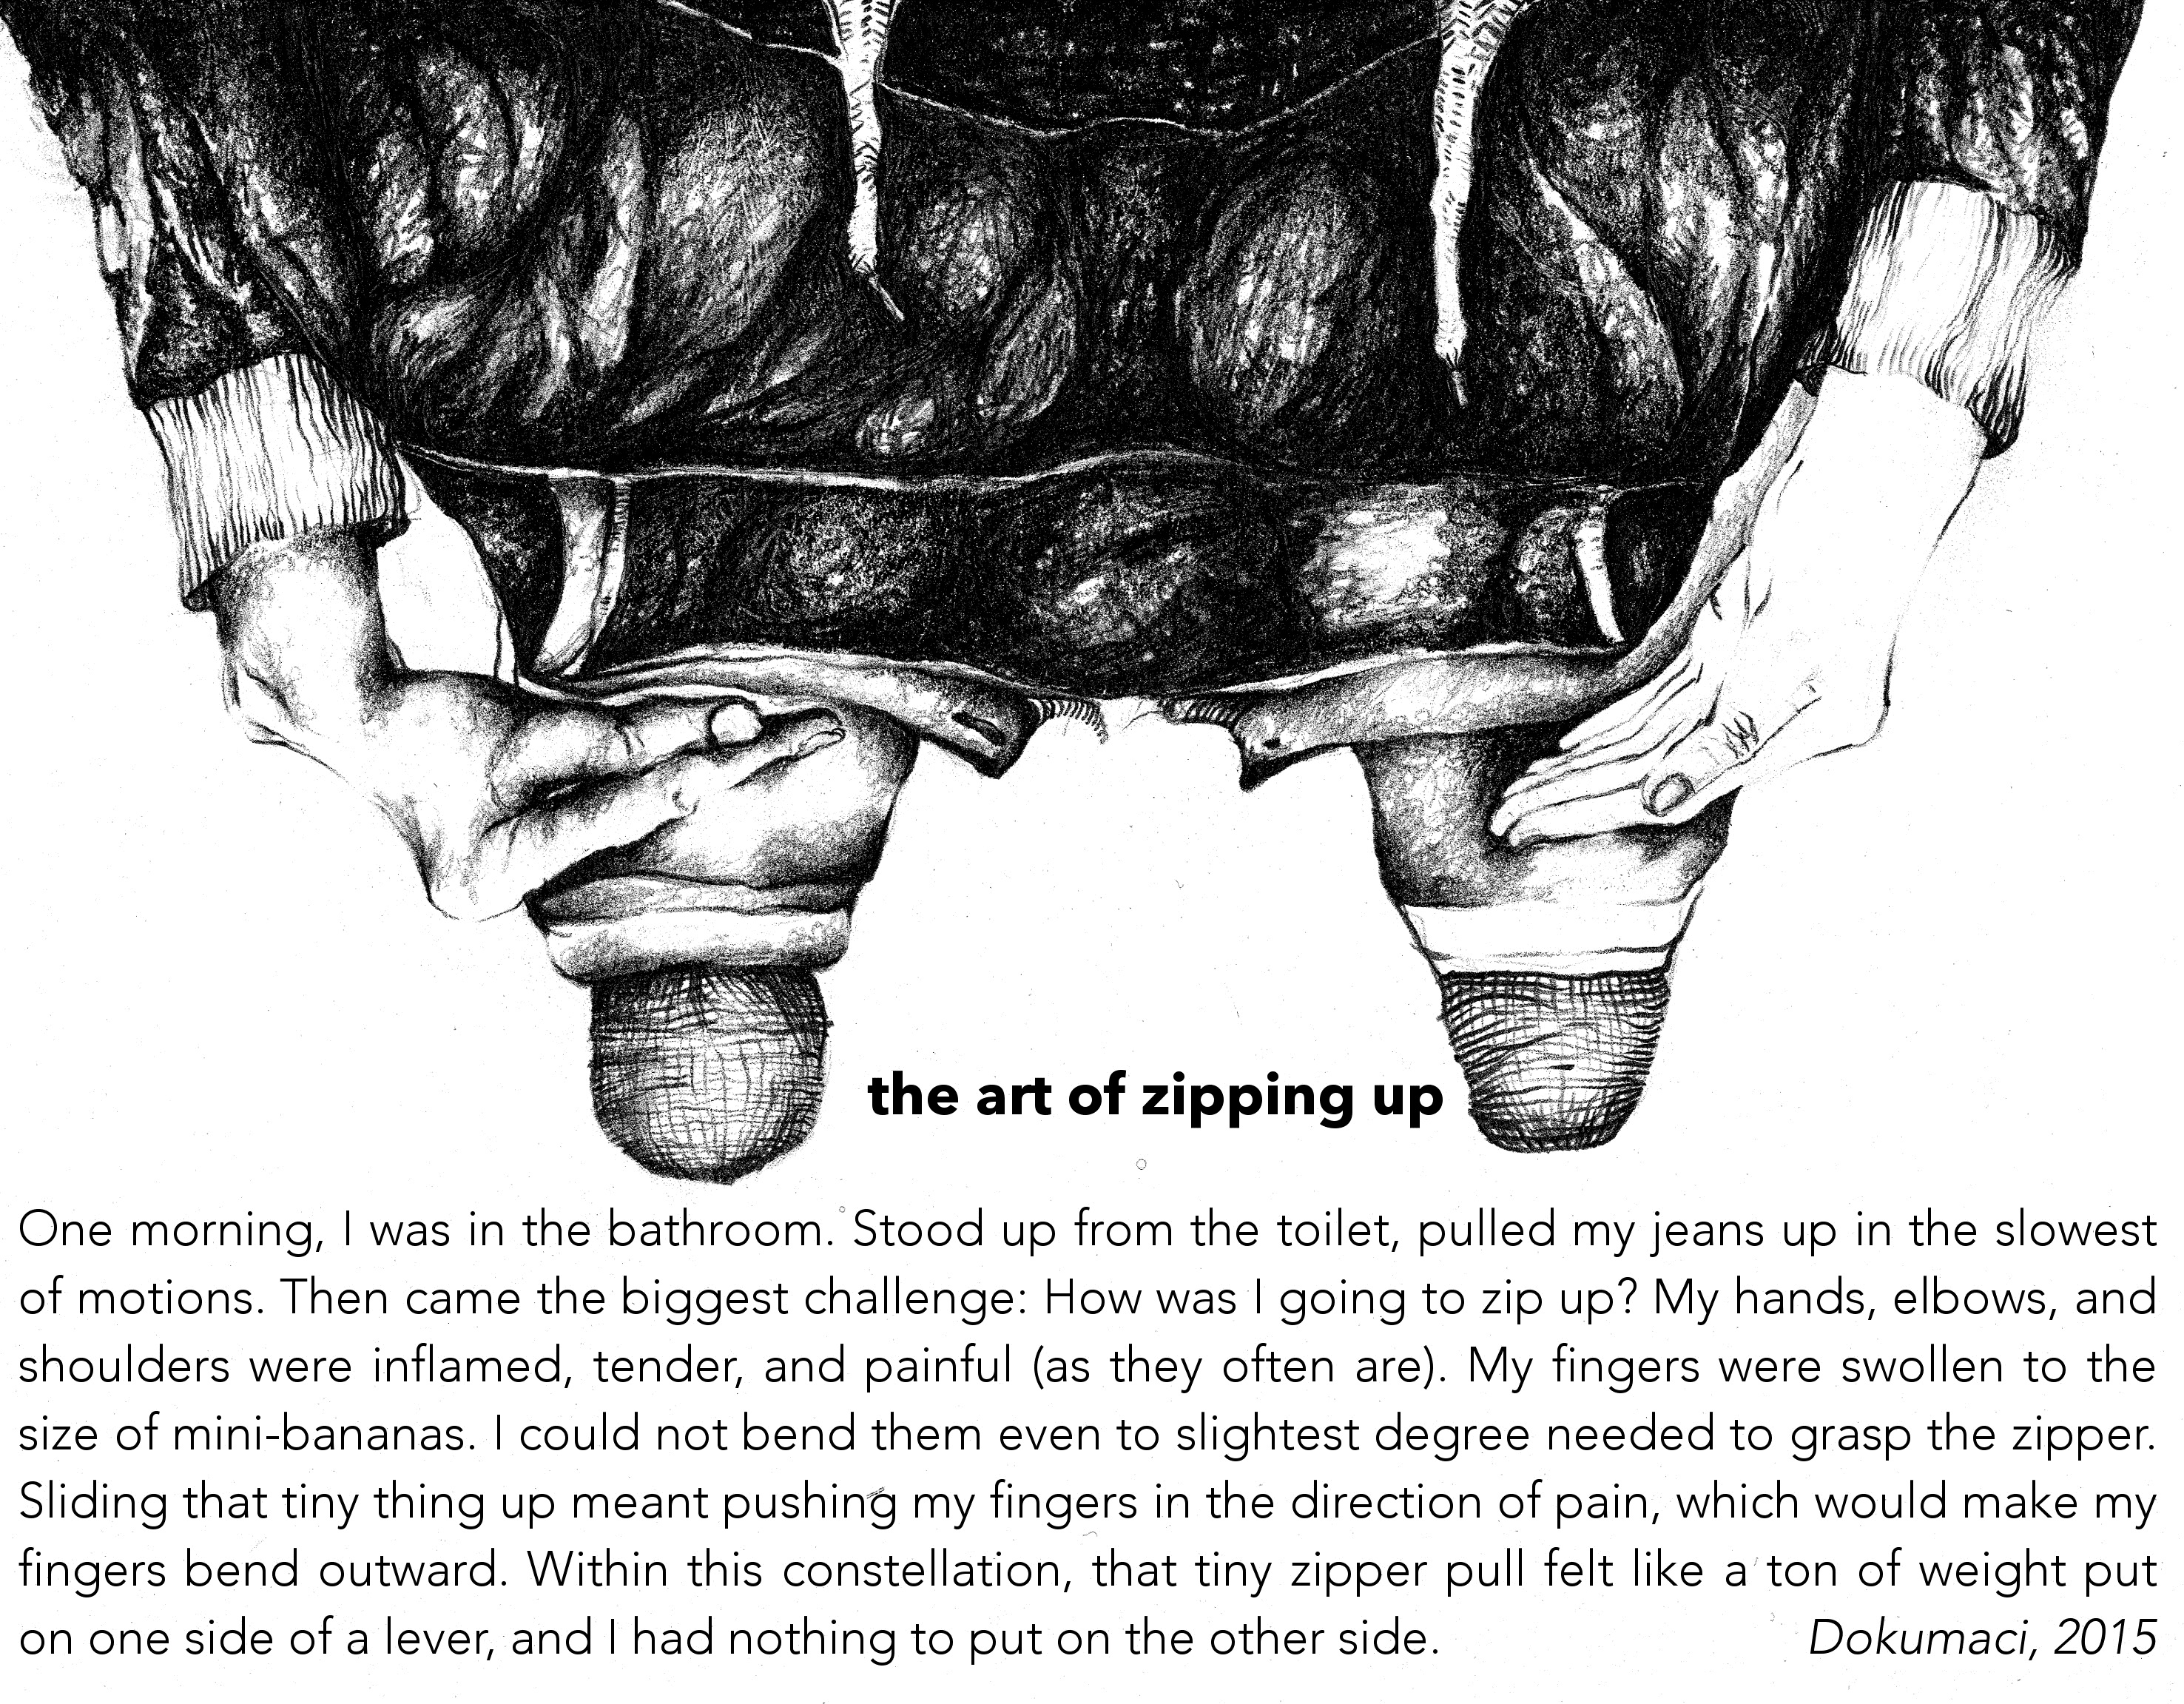 The Art of Zipping Up